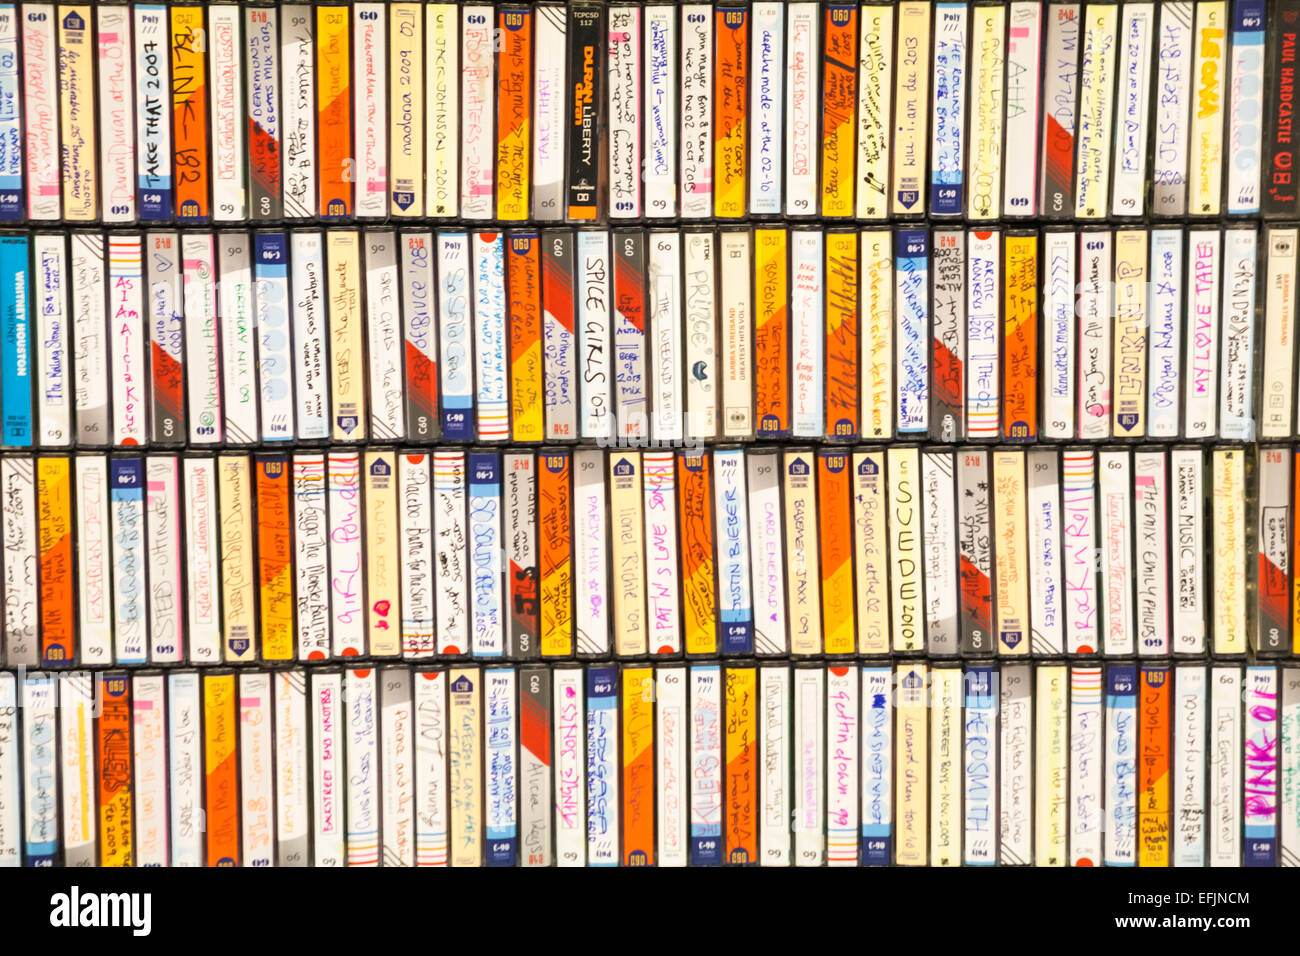 rows of recorded cassette tapes on display at The O2, Peninsula Square, London - Stock Image